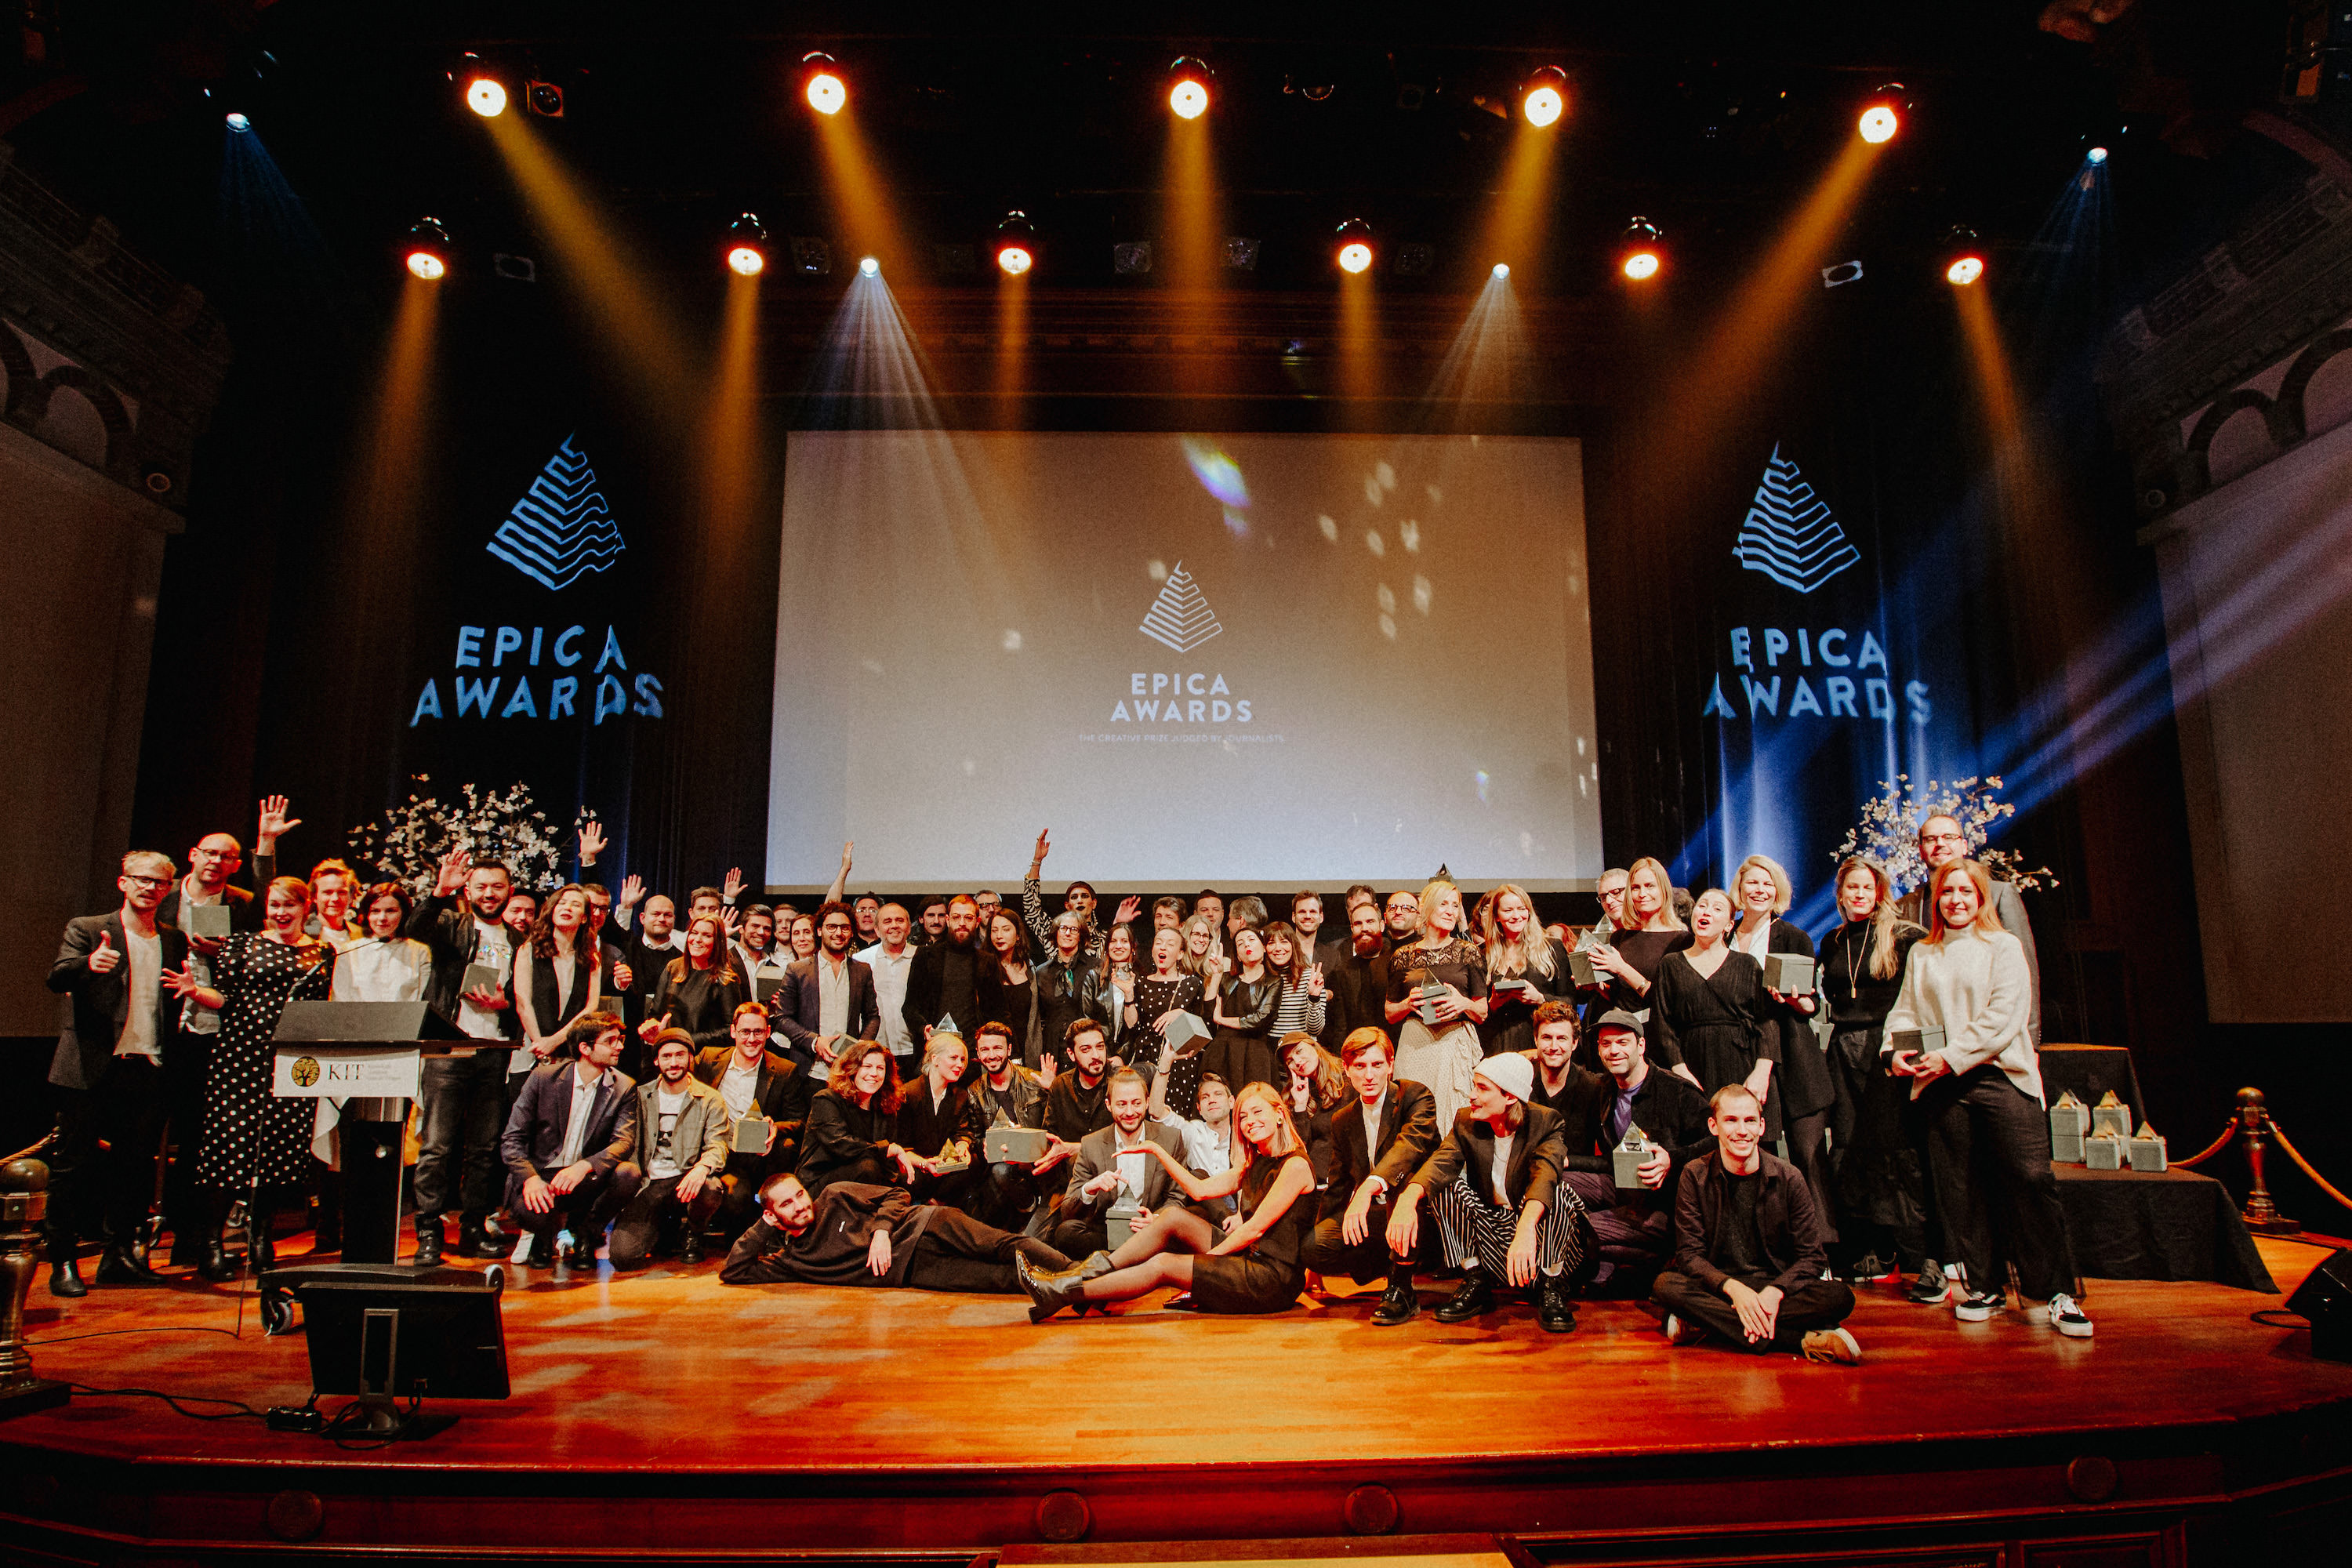 Leo Burnett picks up Gold and Silver at the Epica Awards 2019; Innocean Australia scores Silver